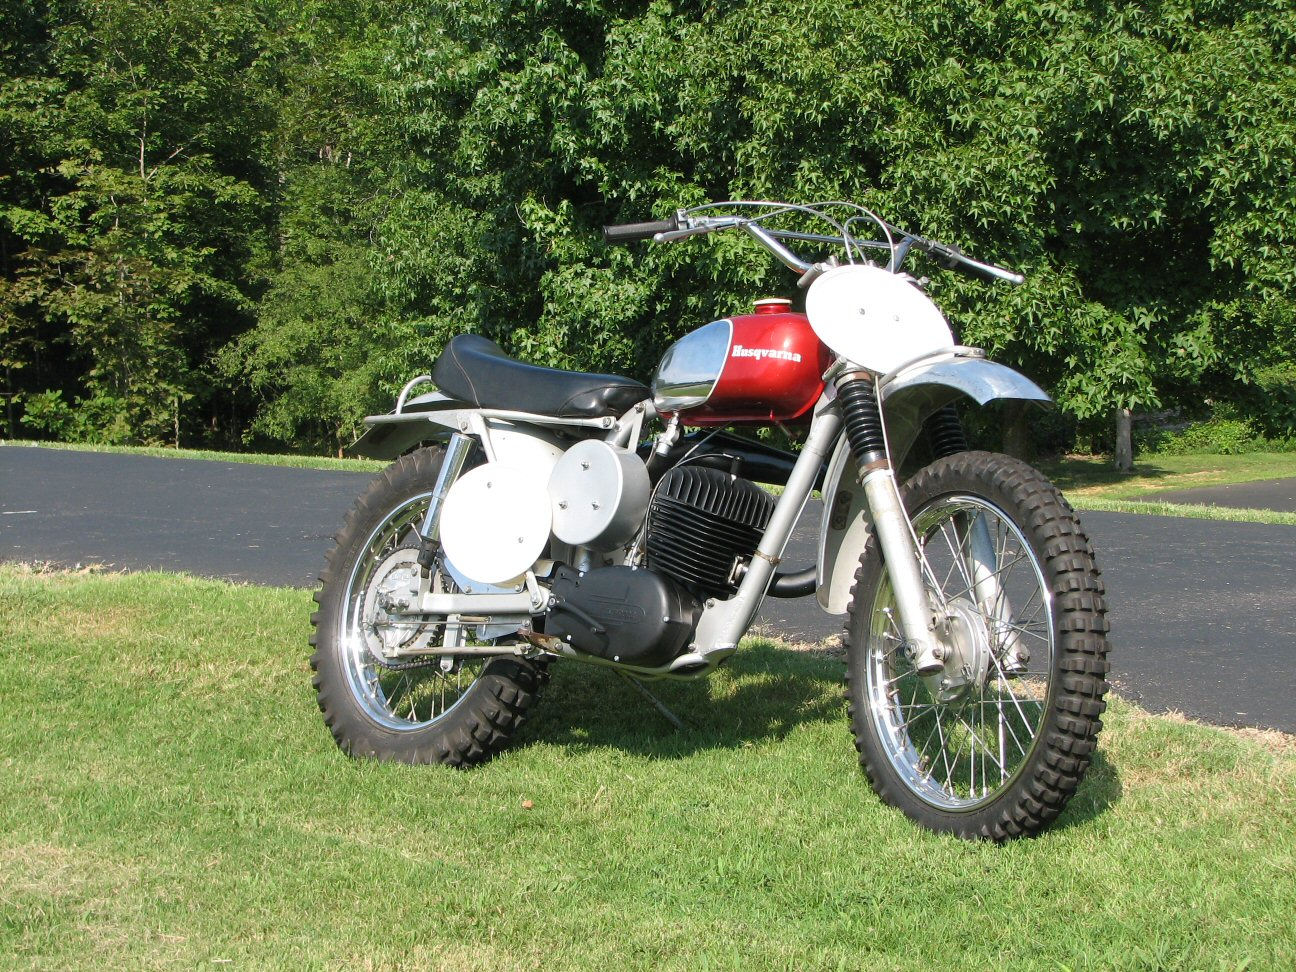 Kevin Grimes, the premier HVA collector in the USA, has completed his  latest rare find........and he took it out riding tday. The 1966 Husqvarna  360 is so ...